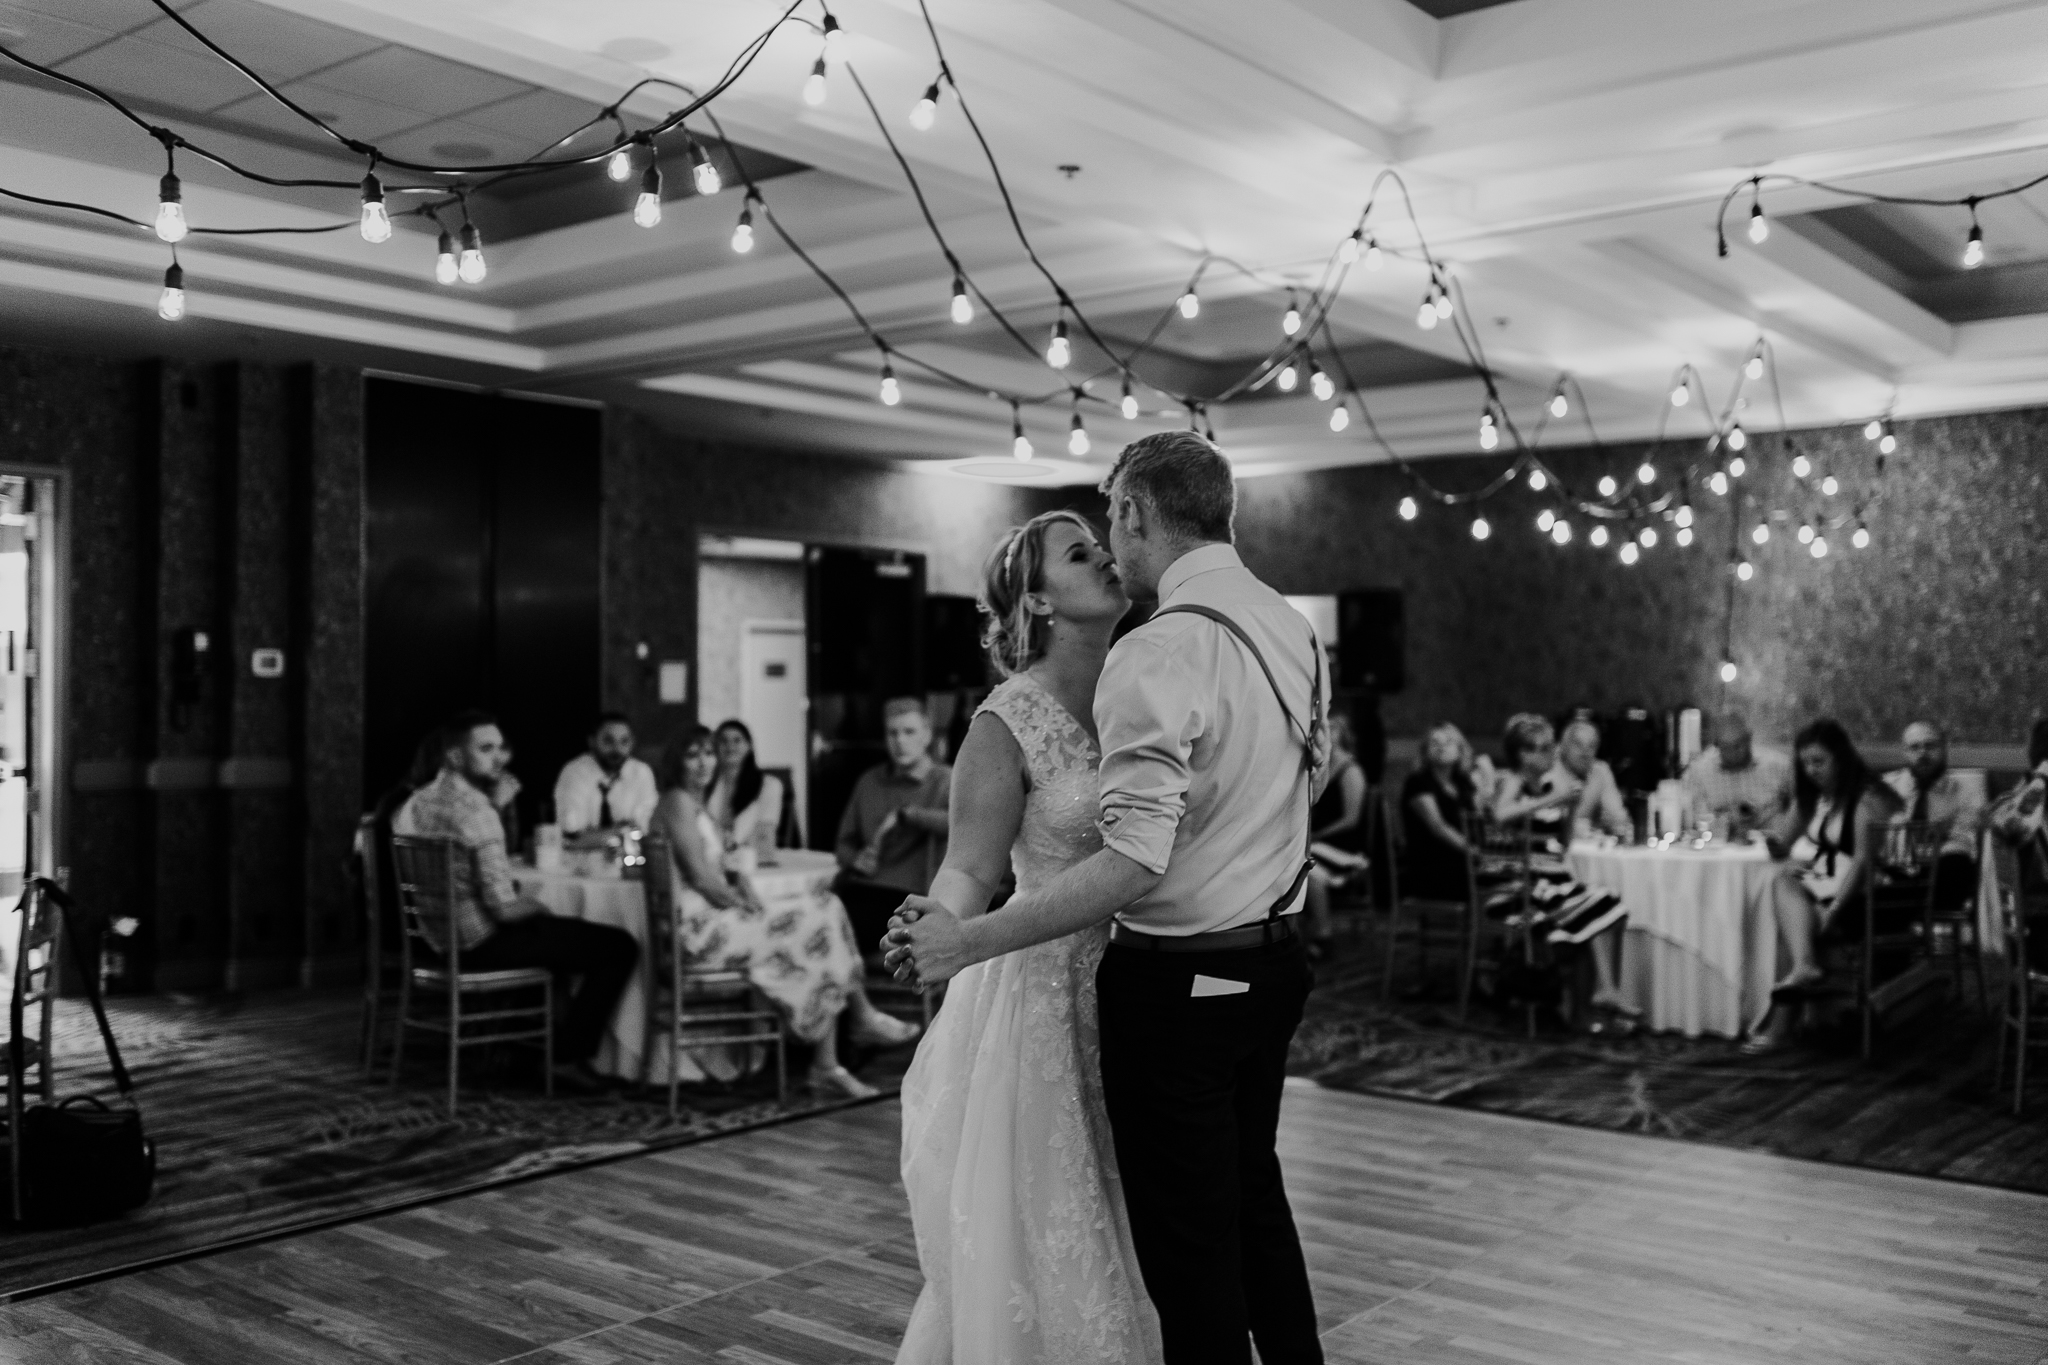 Bride and grooms first dance during reception at Delta Kananaskis wedding